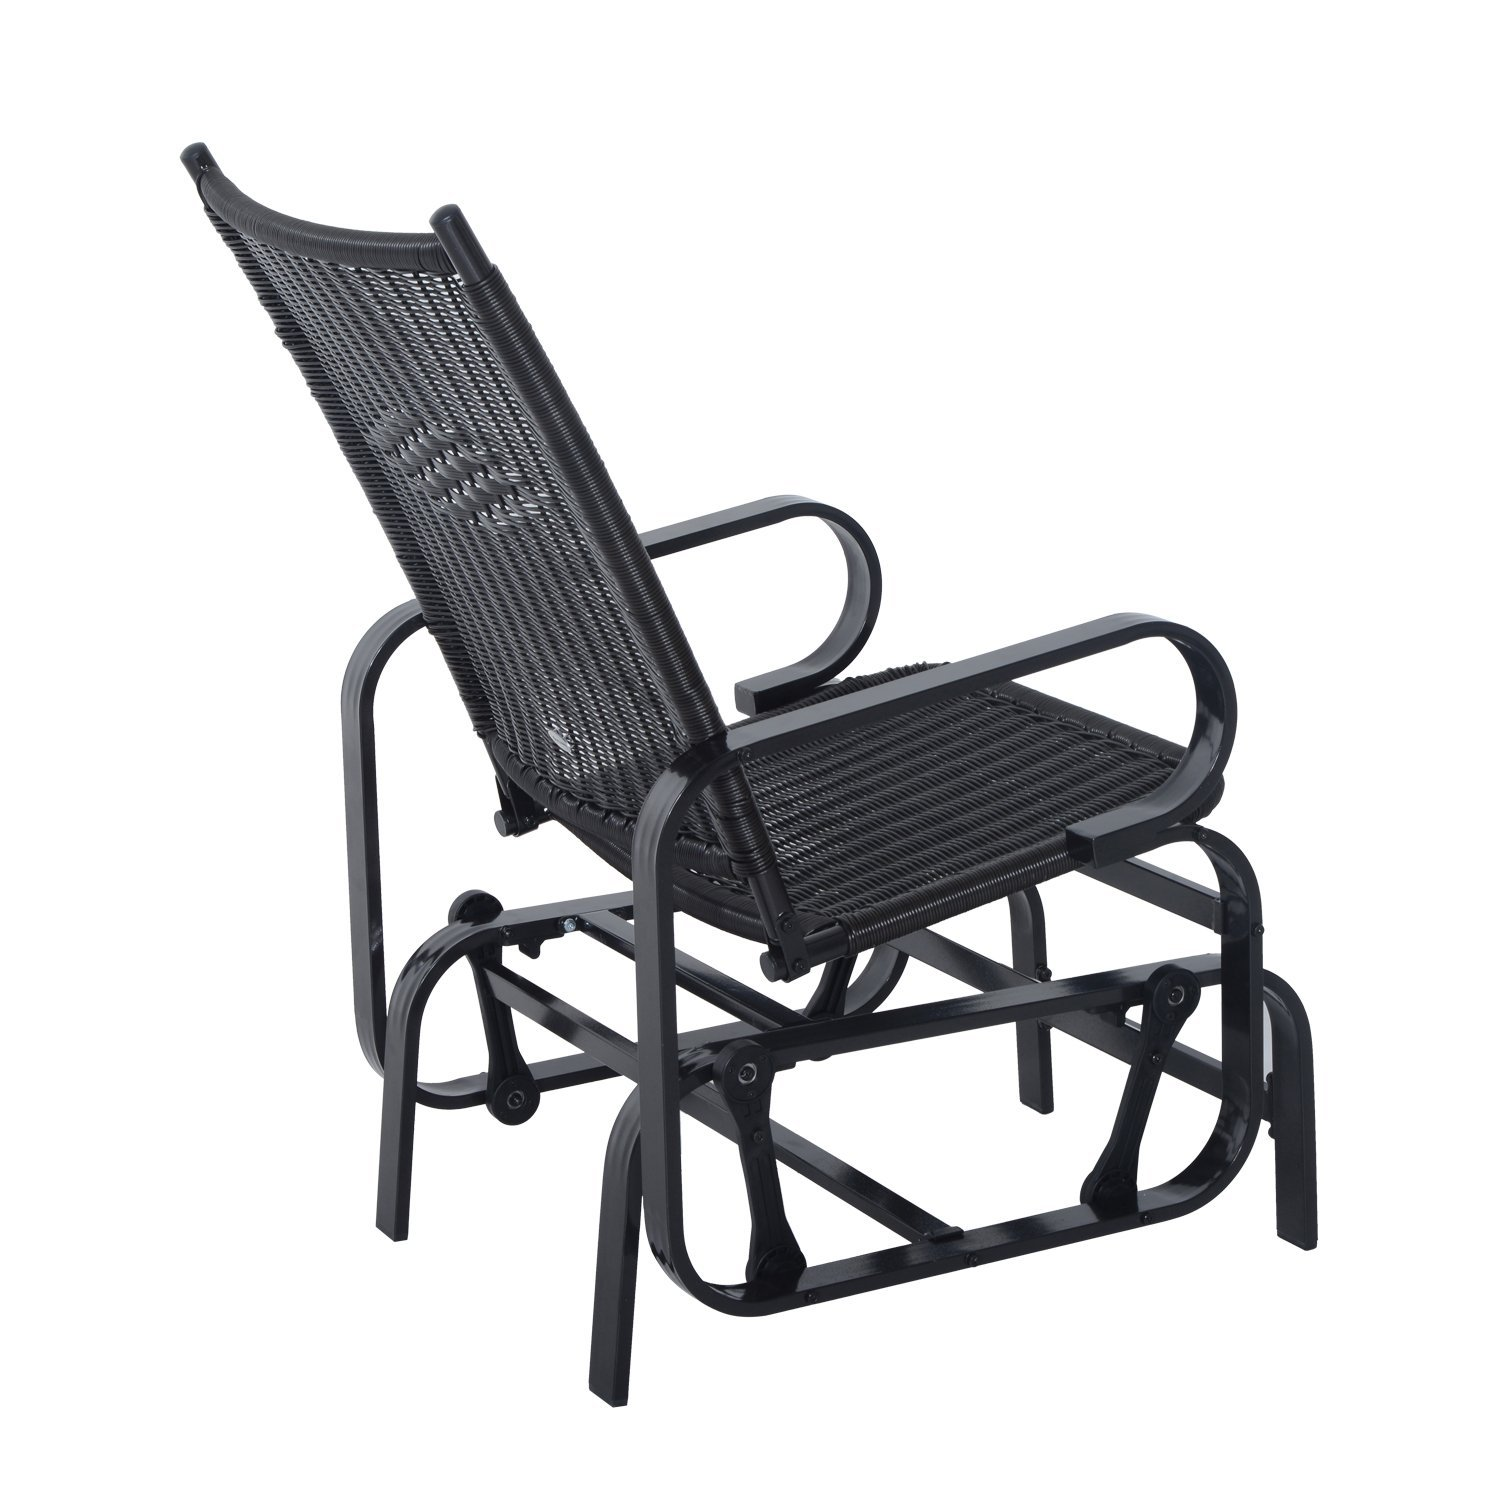 outsunny rattan glider rocking chair single seater rocker seat garden swing chair patio furniture wicker aluminum frame amazoncouk garden u0026 outdoors